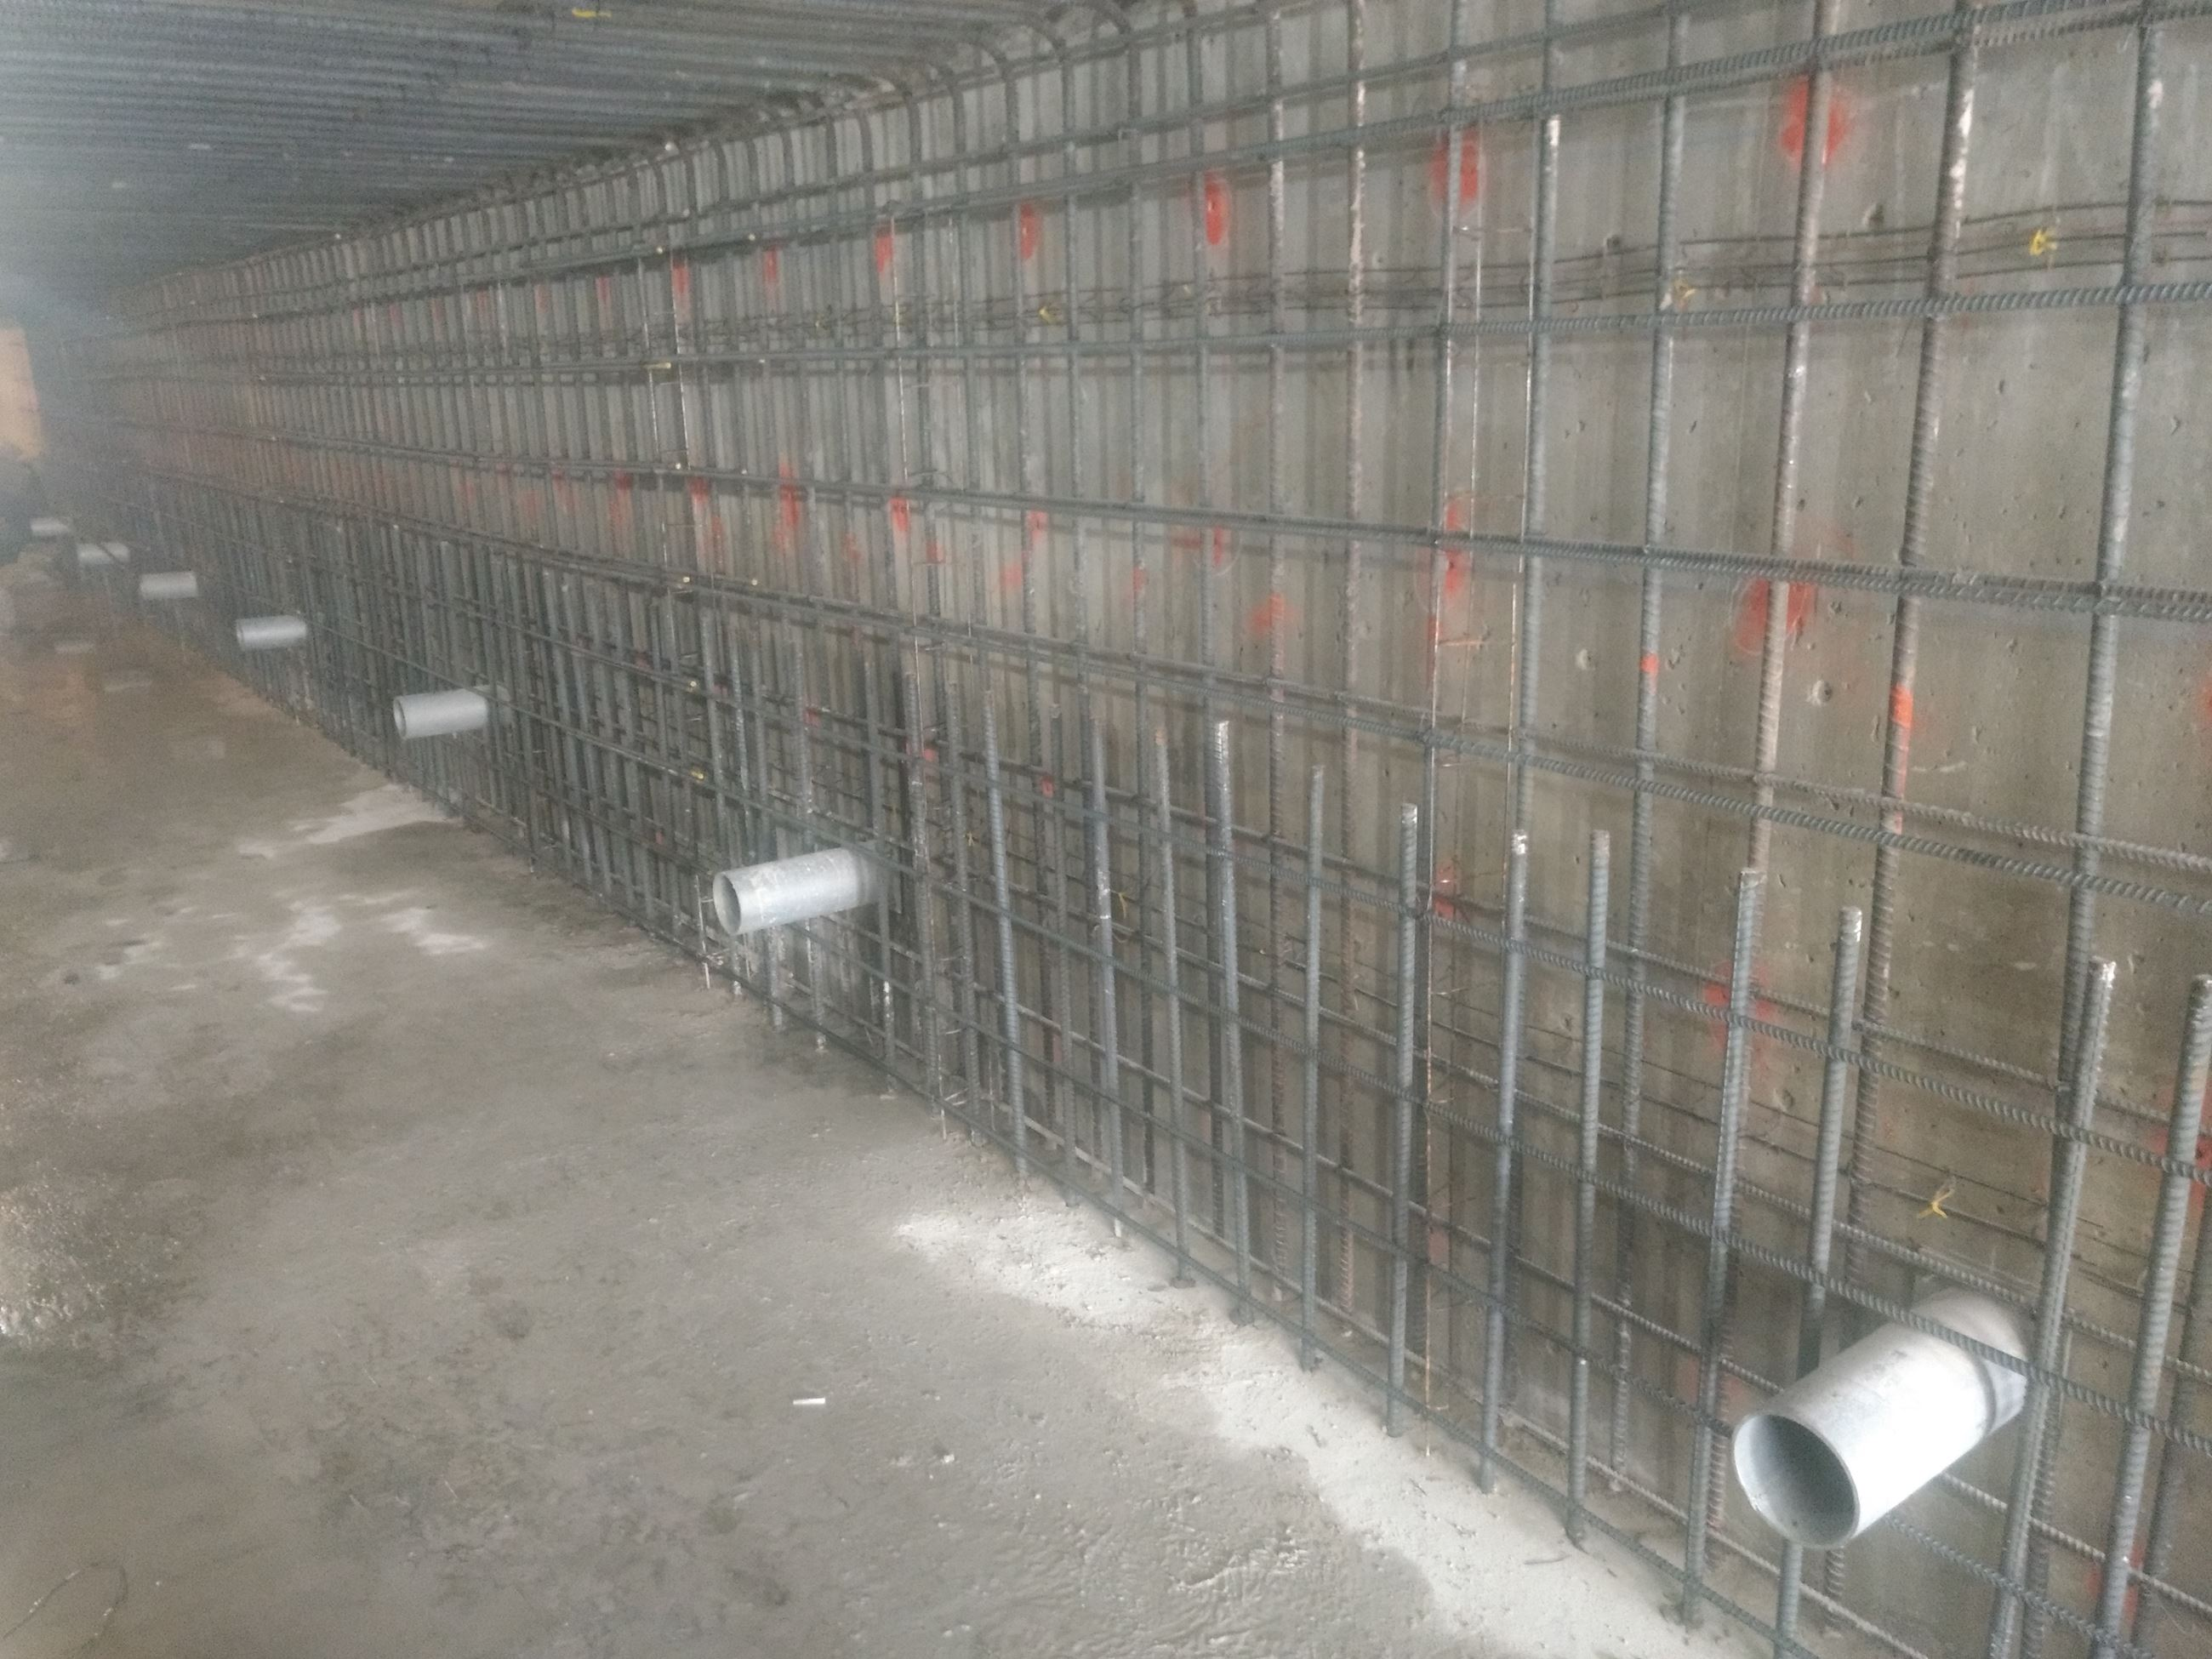 Bainbridge Culvert East wall inner rebar mat tied